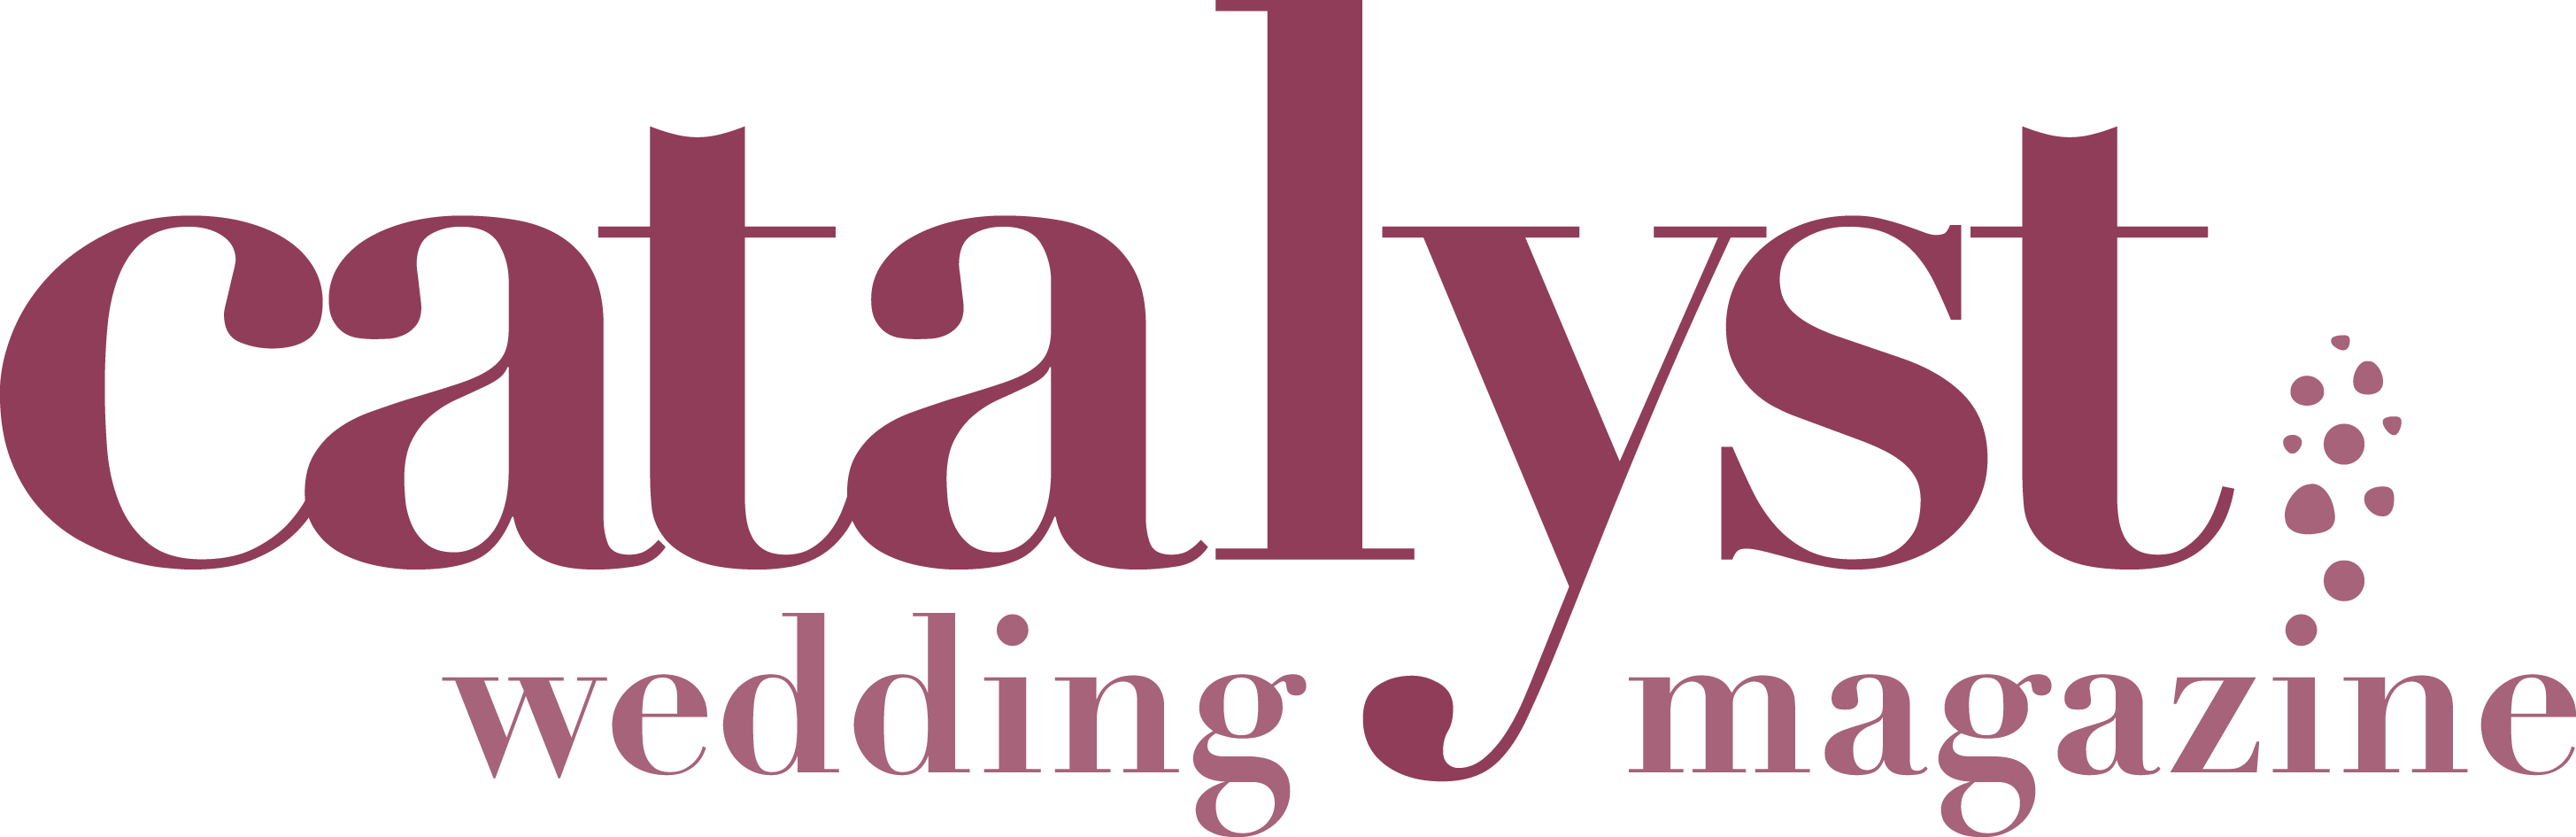 CATALYST WED CO LOGO